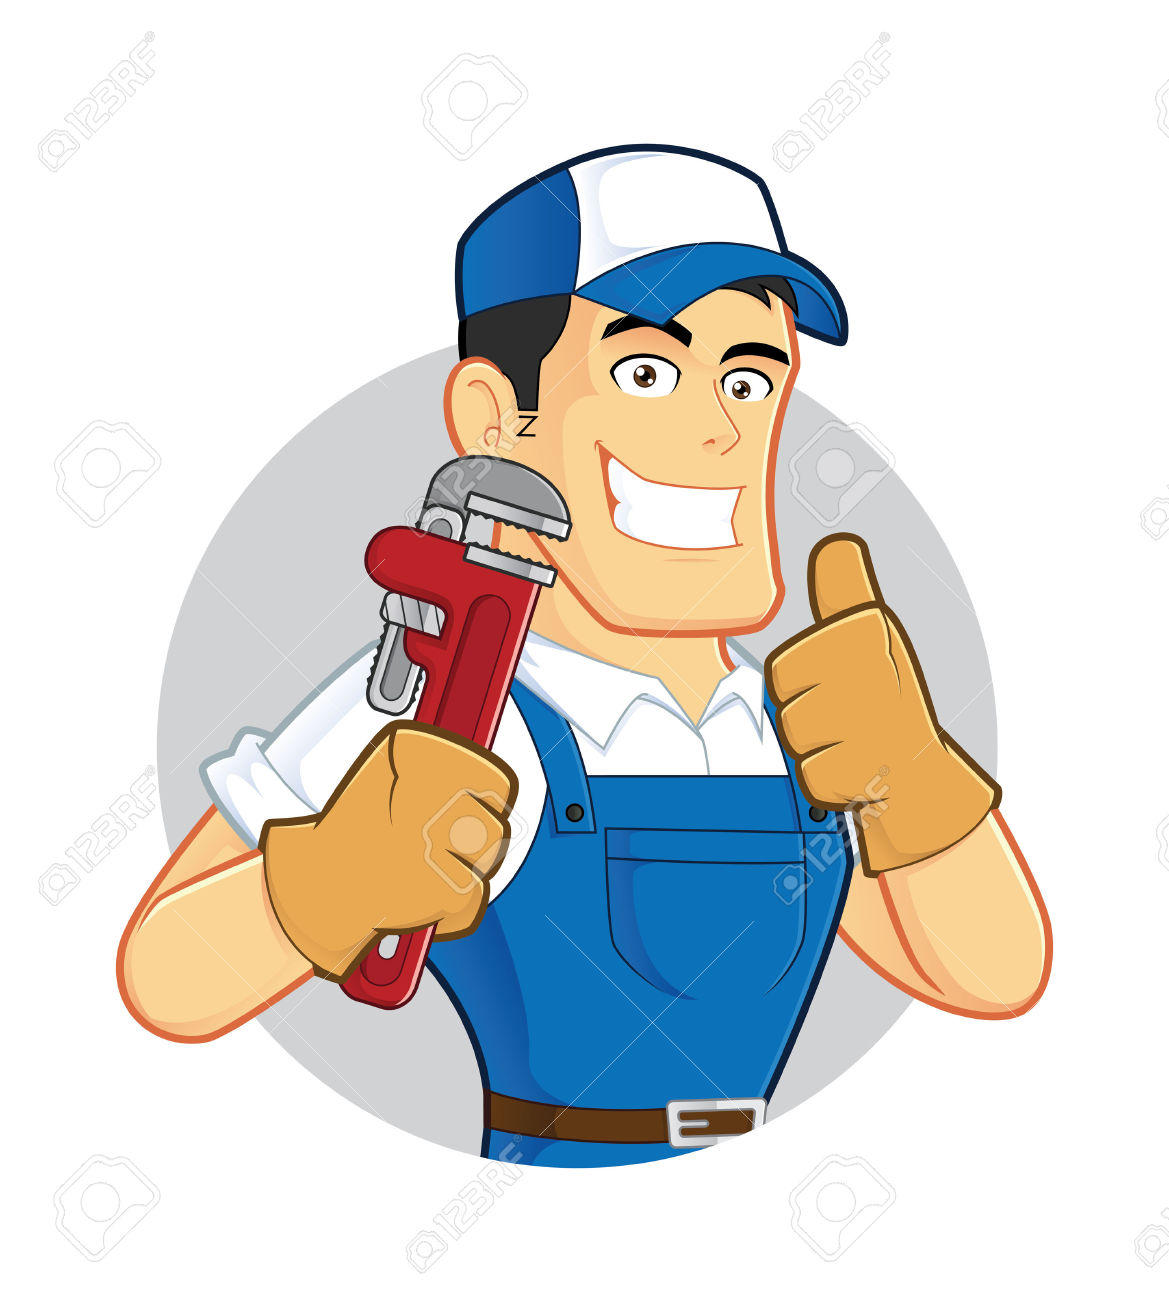 24,002 Plumber Stock Vector Illustration And Royalty Free Plumber.